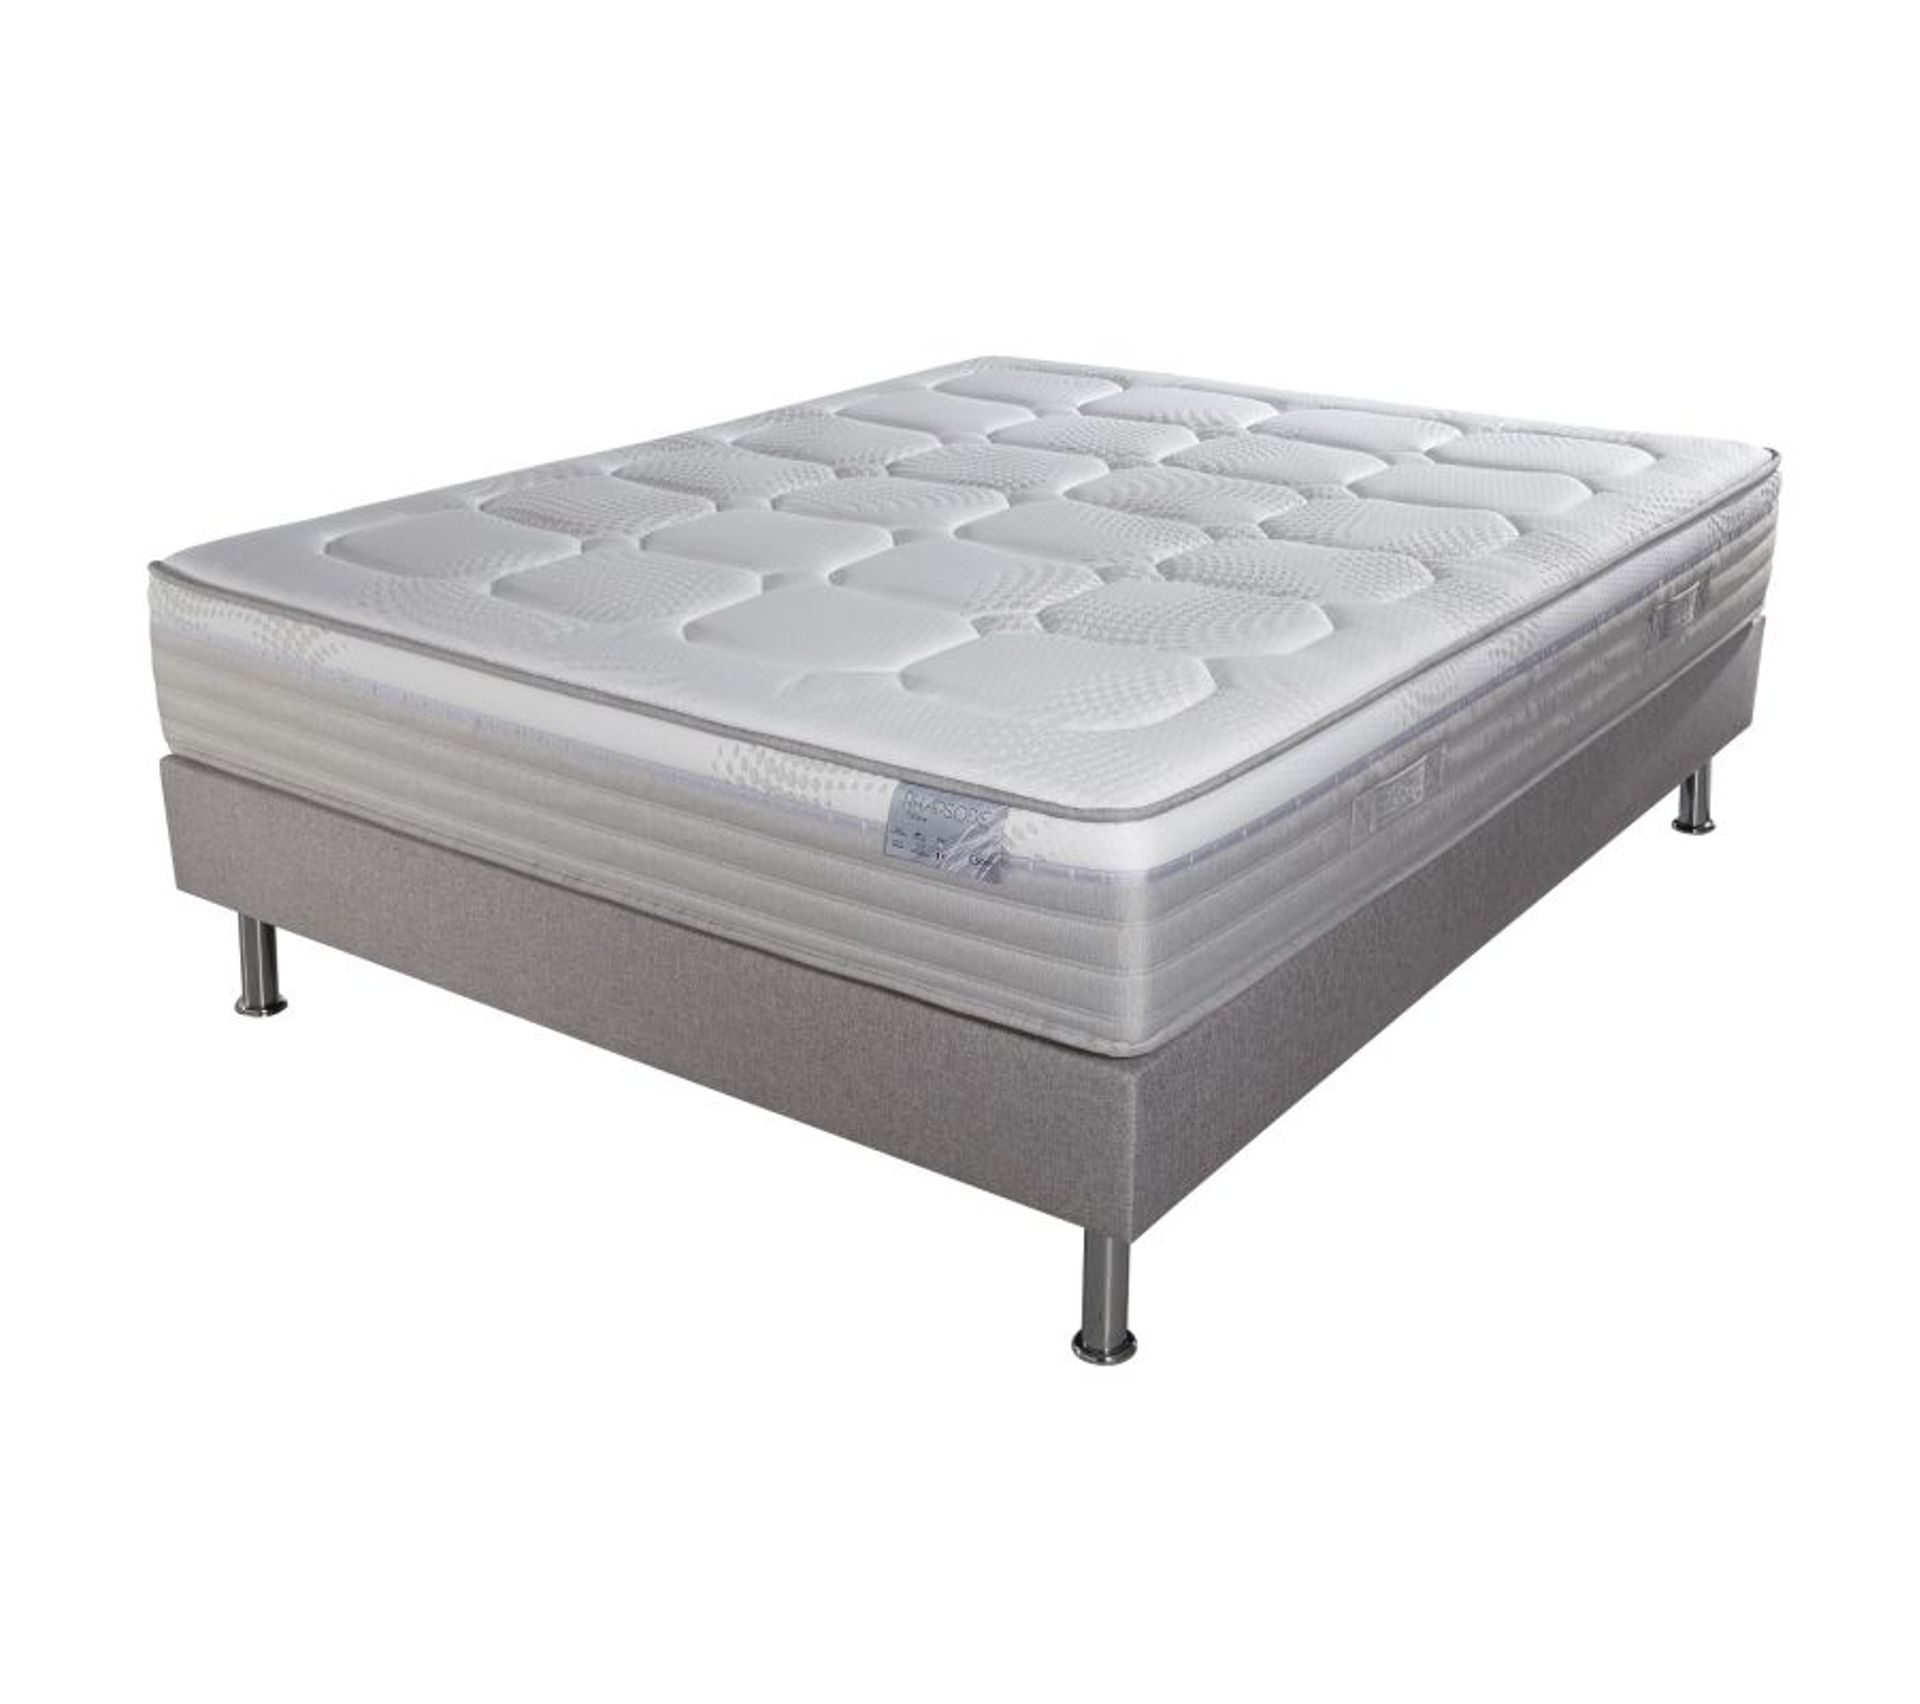 Ensemble Matelas Sommier Rhapsodie 120x190 Ensemble Literie But